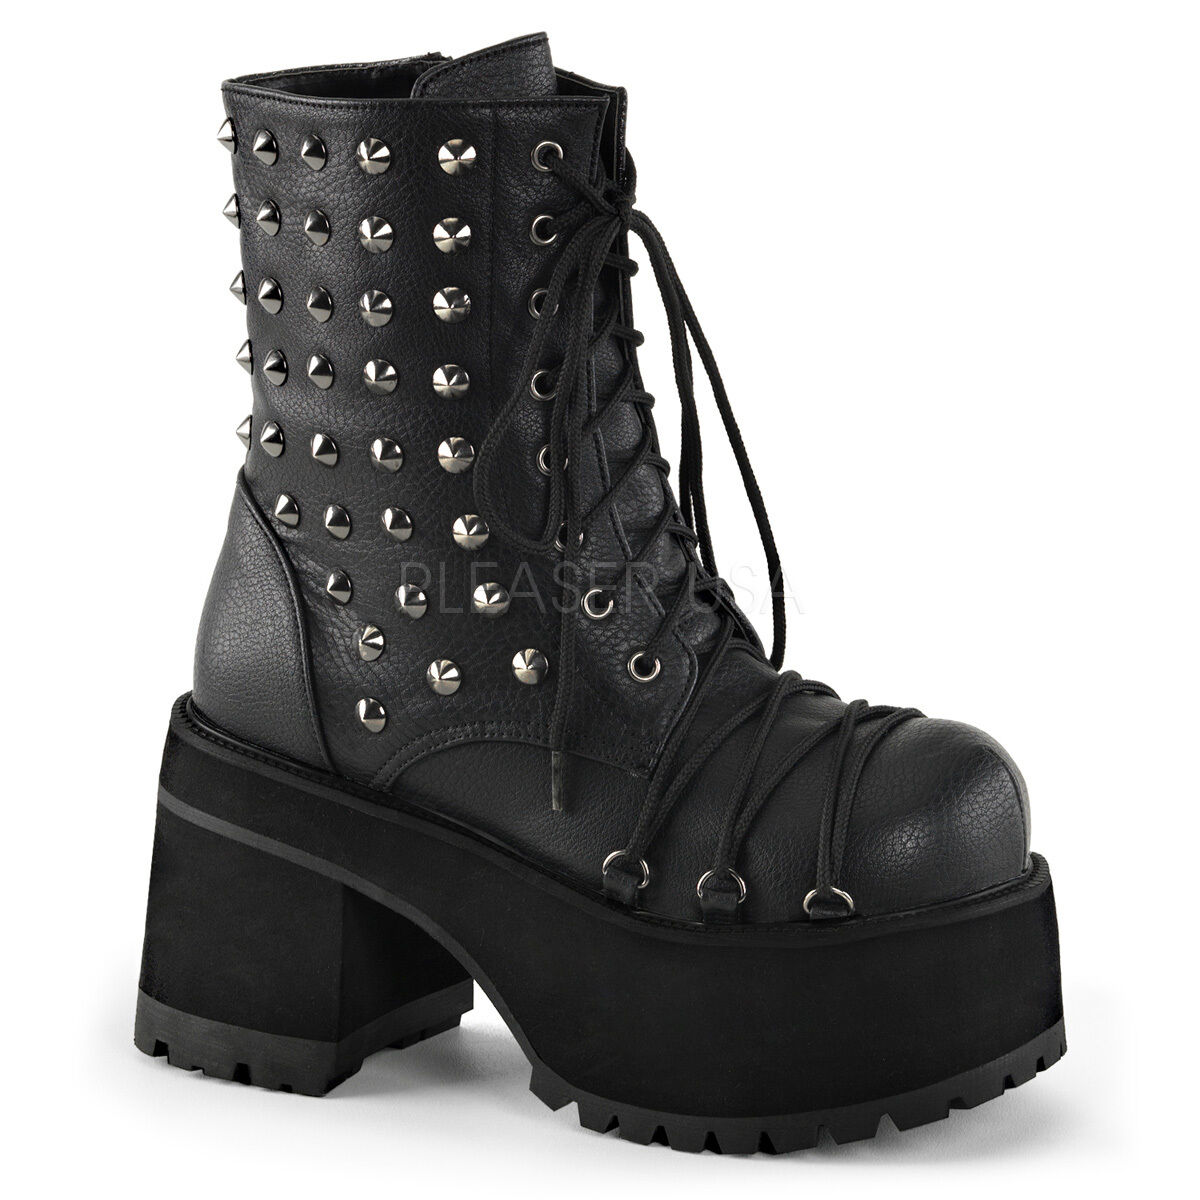 Demonia 4  Platform Black Ankle Boots w  Lace & Spikes 6 7 8 9 10 11 12